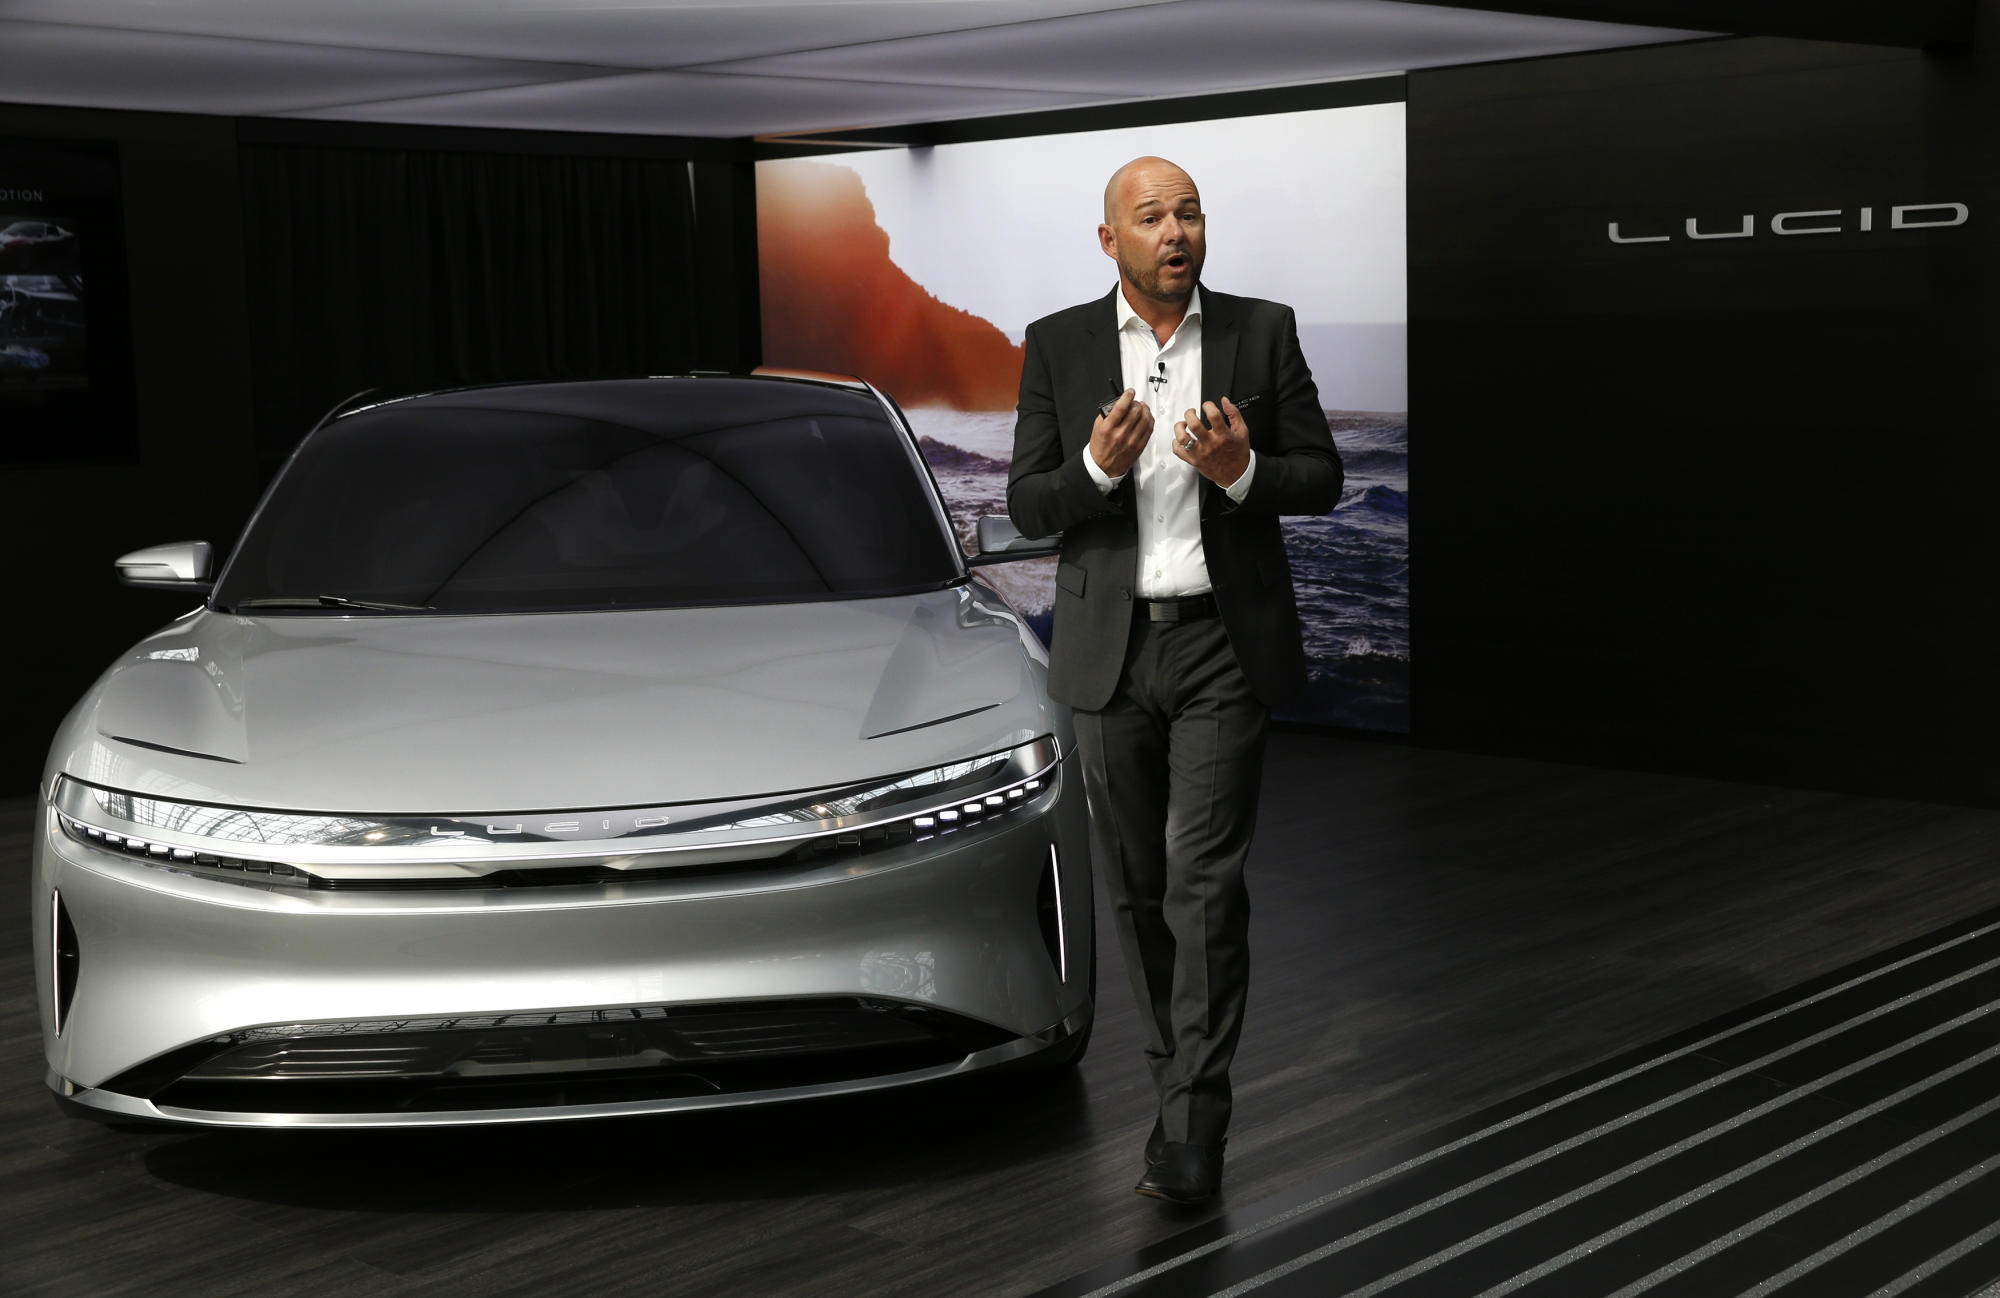 CCIV stock soars 30% on report it's nearing deal with Lucid Motors